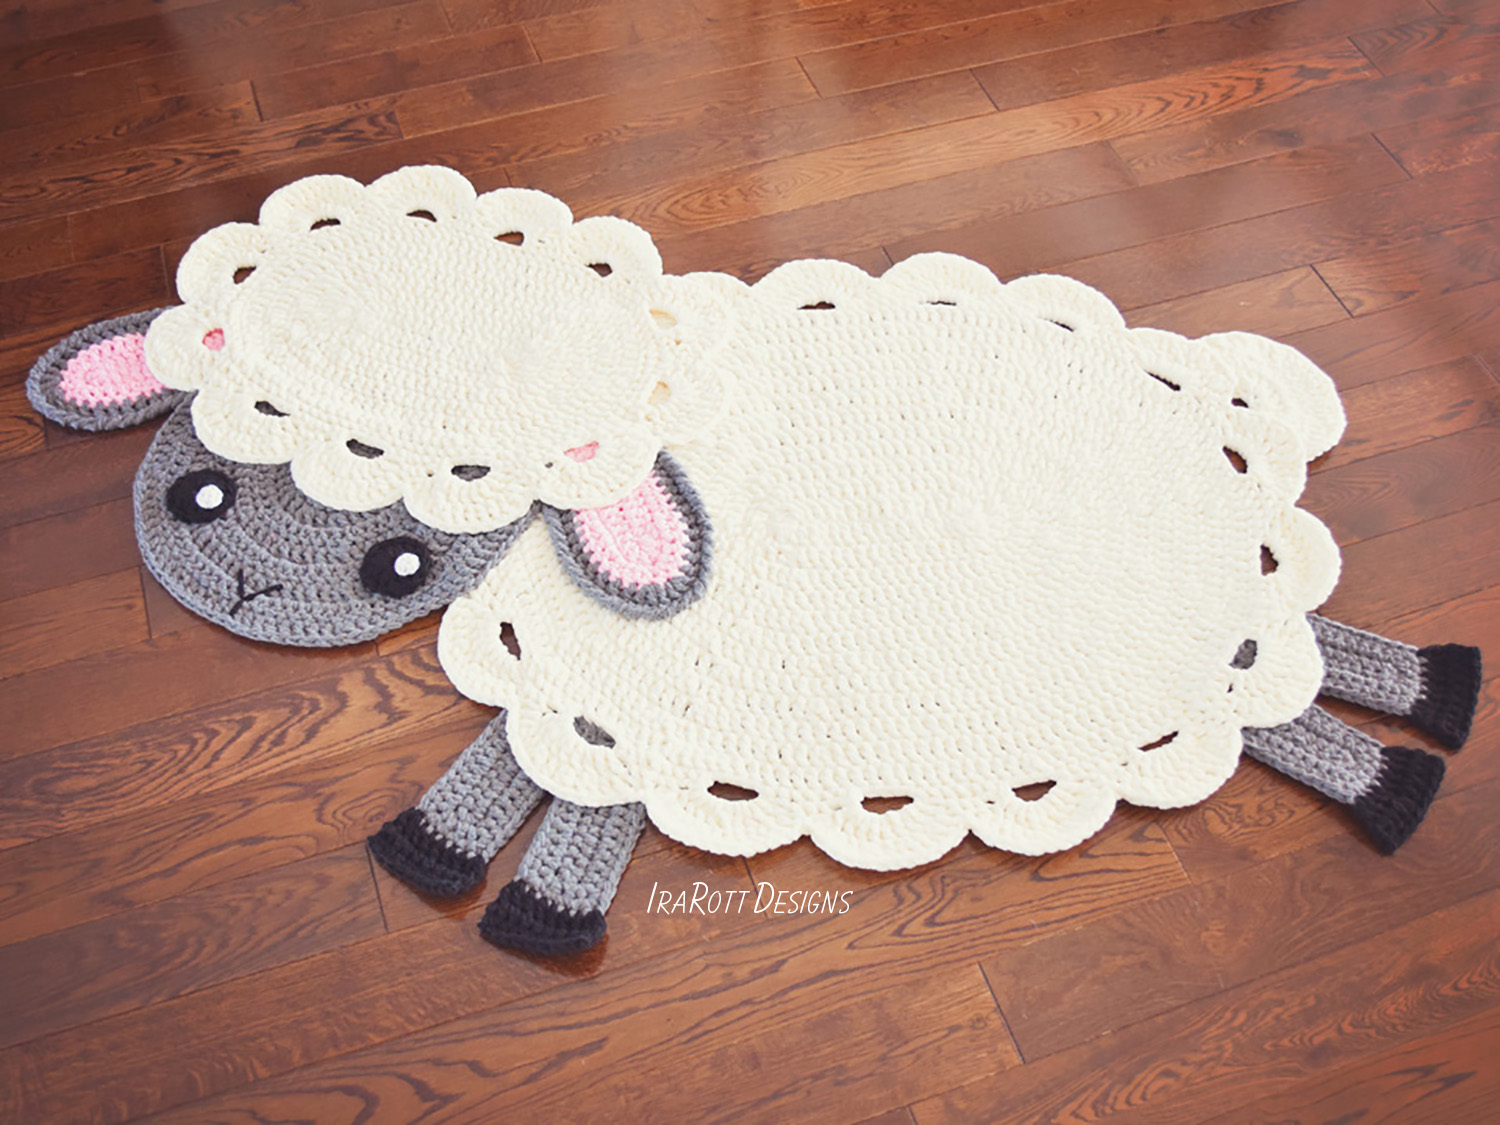 Crochet Pattern Pdf By Irarott For Making An Easter Lamb Rug Or Sheep Reading Mat Using